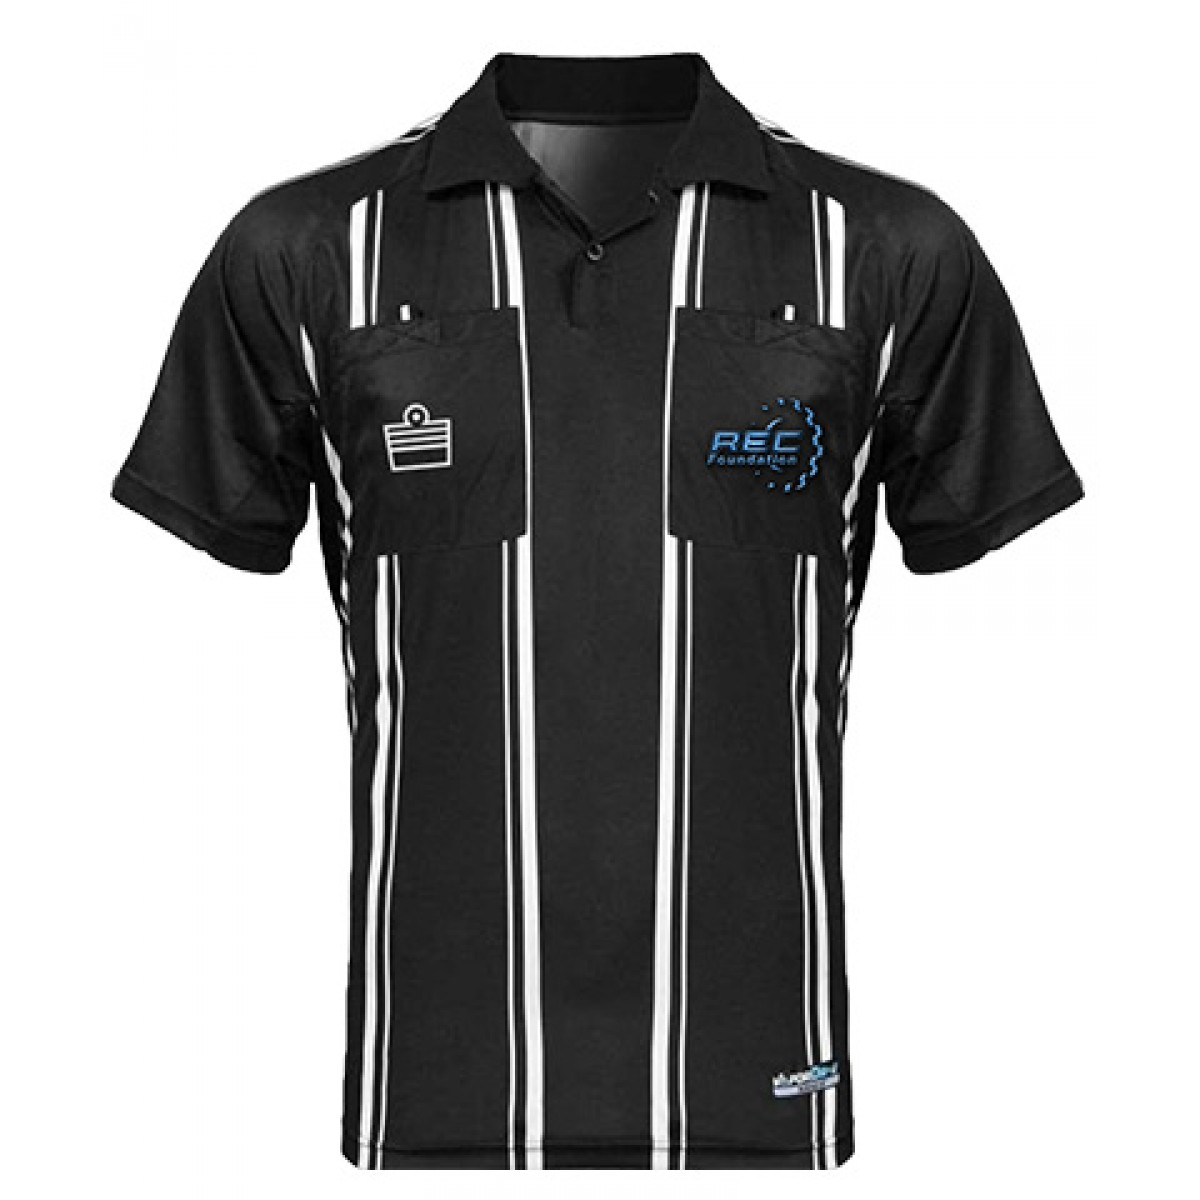 Admiral Pro Referee Jersey SS-Black-3XL